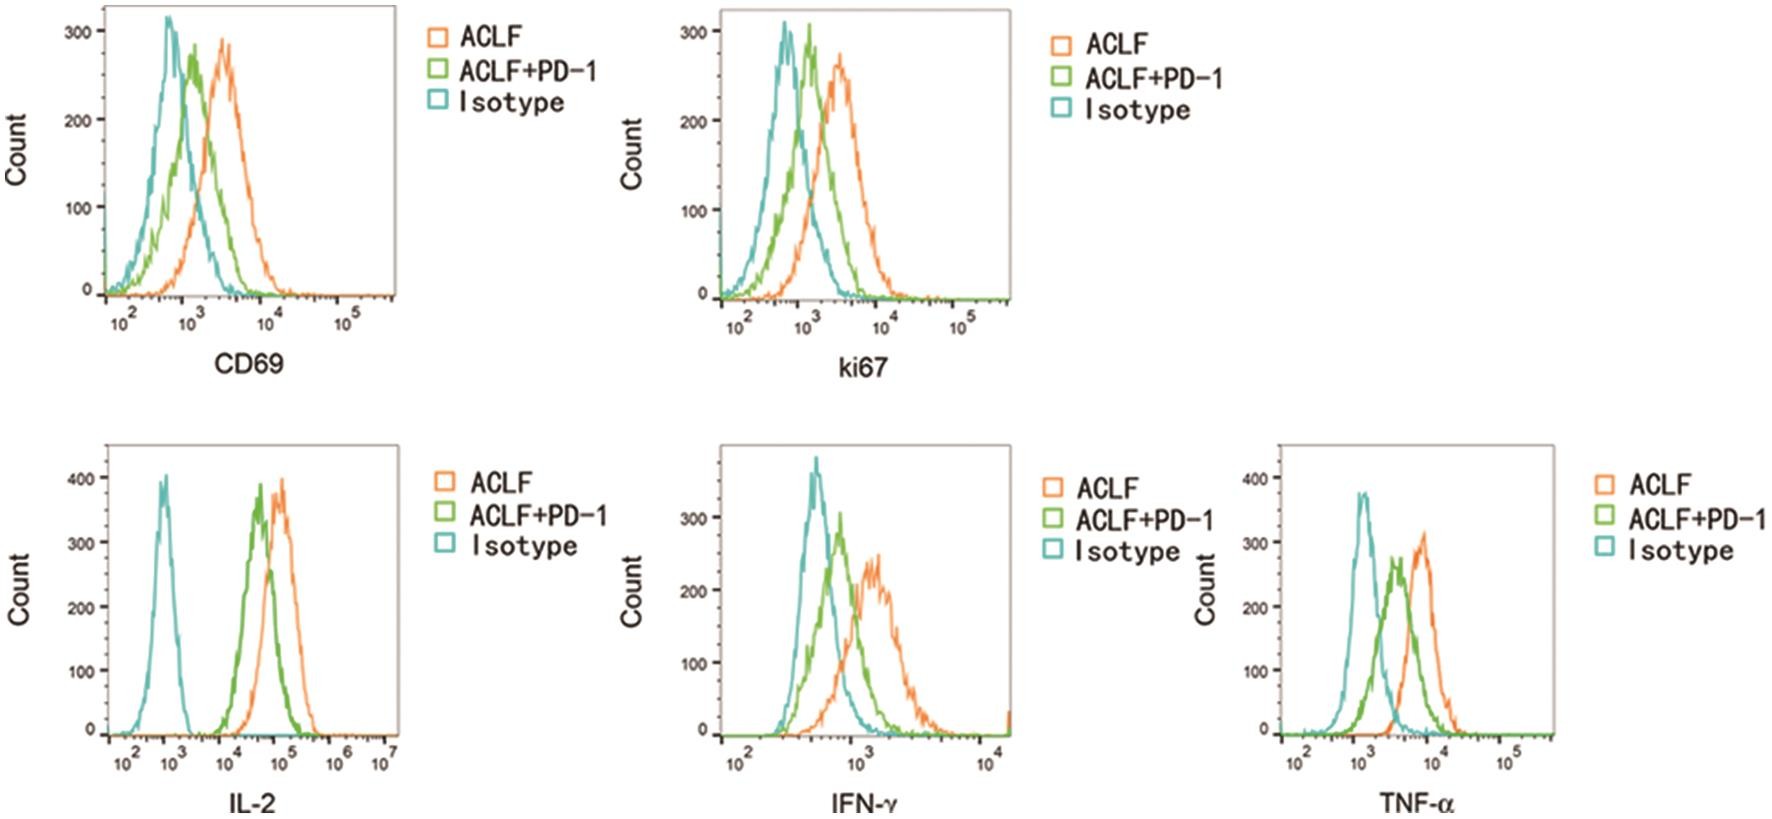 When PD-1/PD-L1 was activated, the cell viability (CD69) (MFI: 917±43 vs. 1,723±143, <italic>p</italic><0.001] and proliferative ability (Ki67) (MFI: 940±71 vs. 1,737±139, <italic>p</italic><0.001) of CD8+ T lymphocytes in patients in the ACLF+PD-1 group were lower than those in the ACLF group.